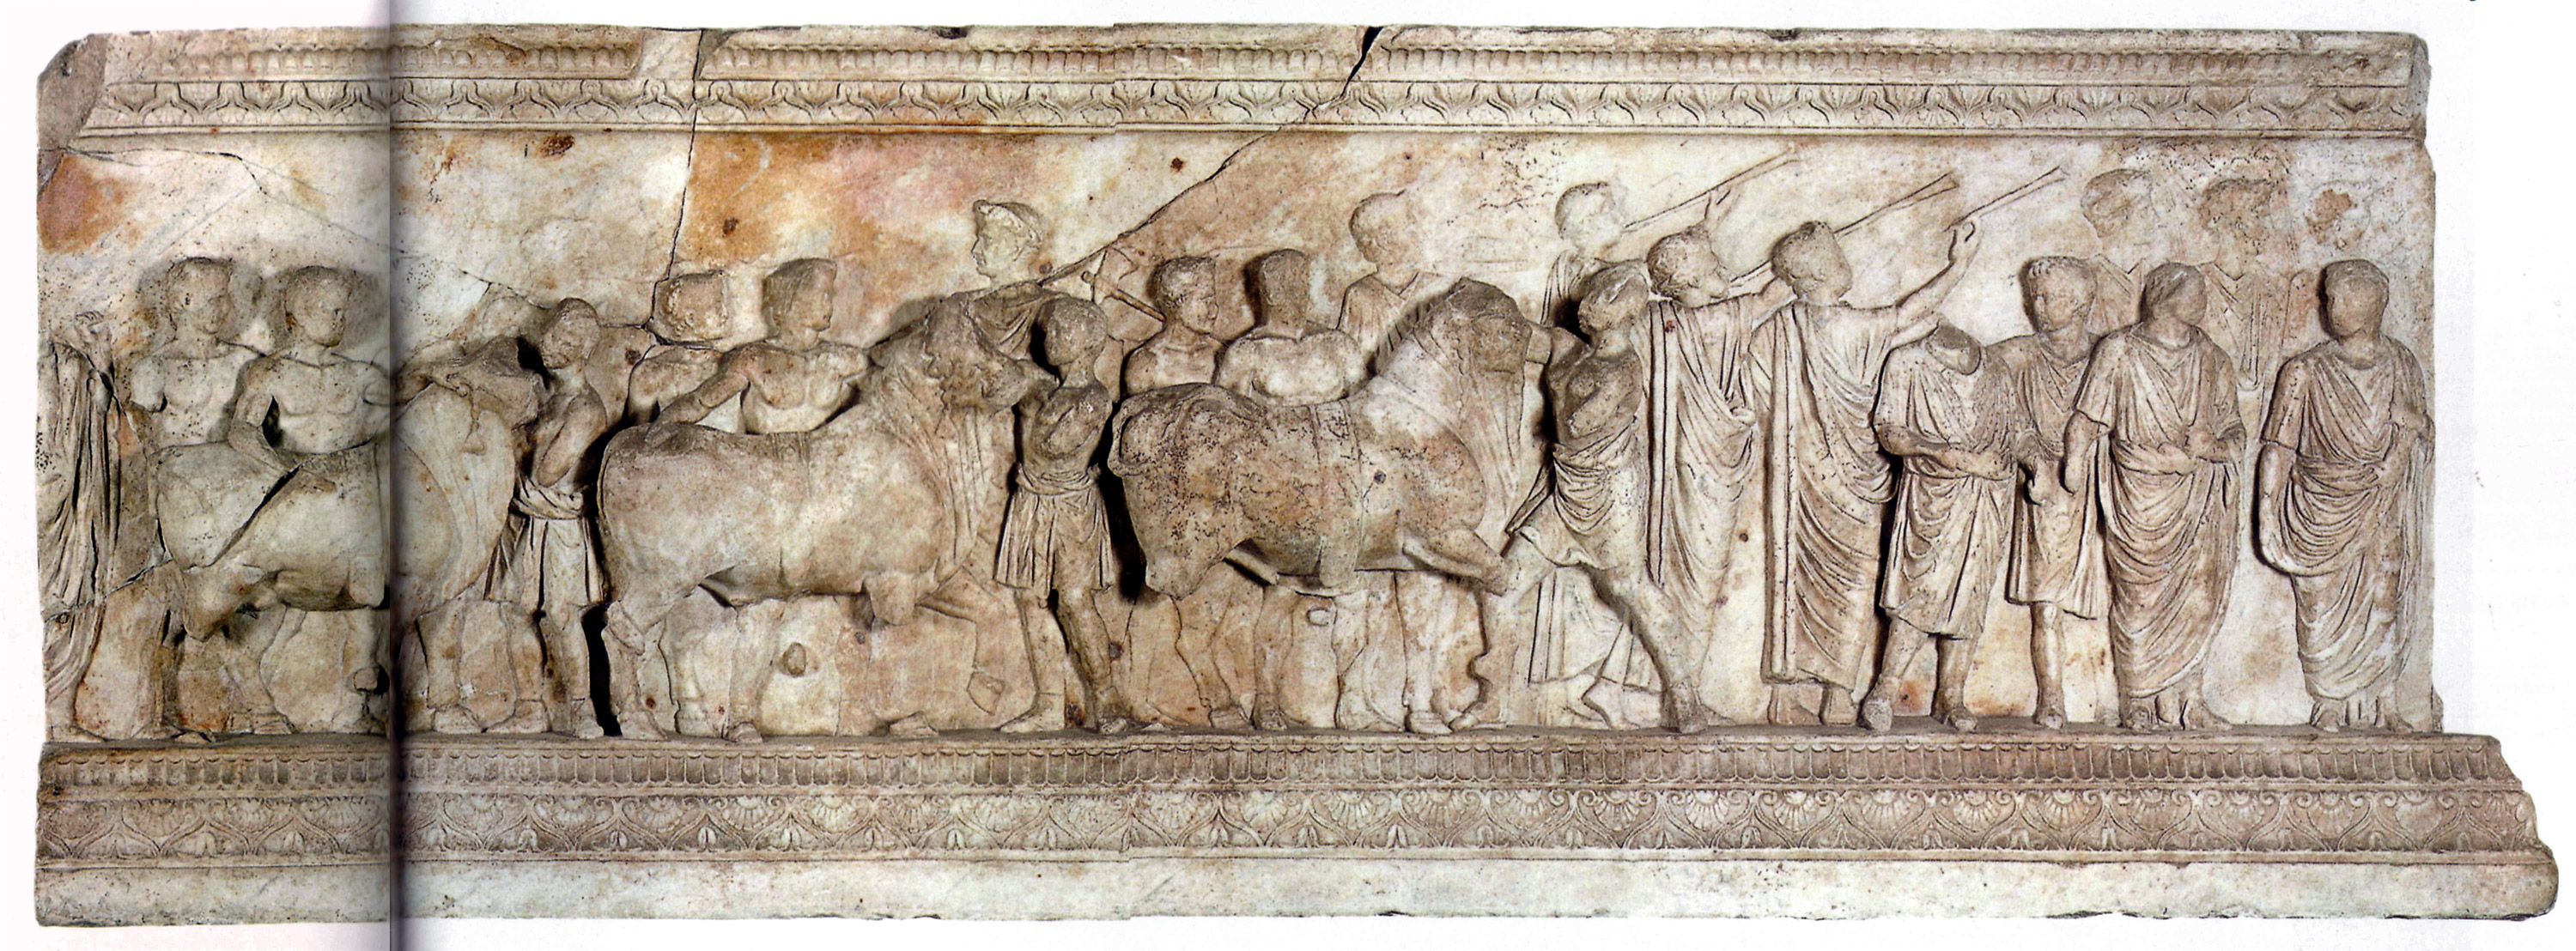 Altar or Base of the Vicomagistri. Marble. The age of Tiberius. Rome, Vatican Museums, Gregorian Profane Museum